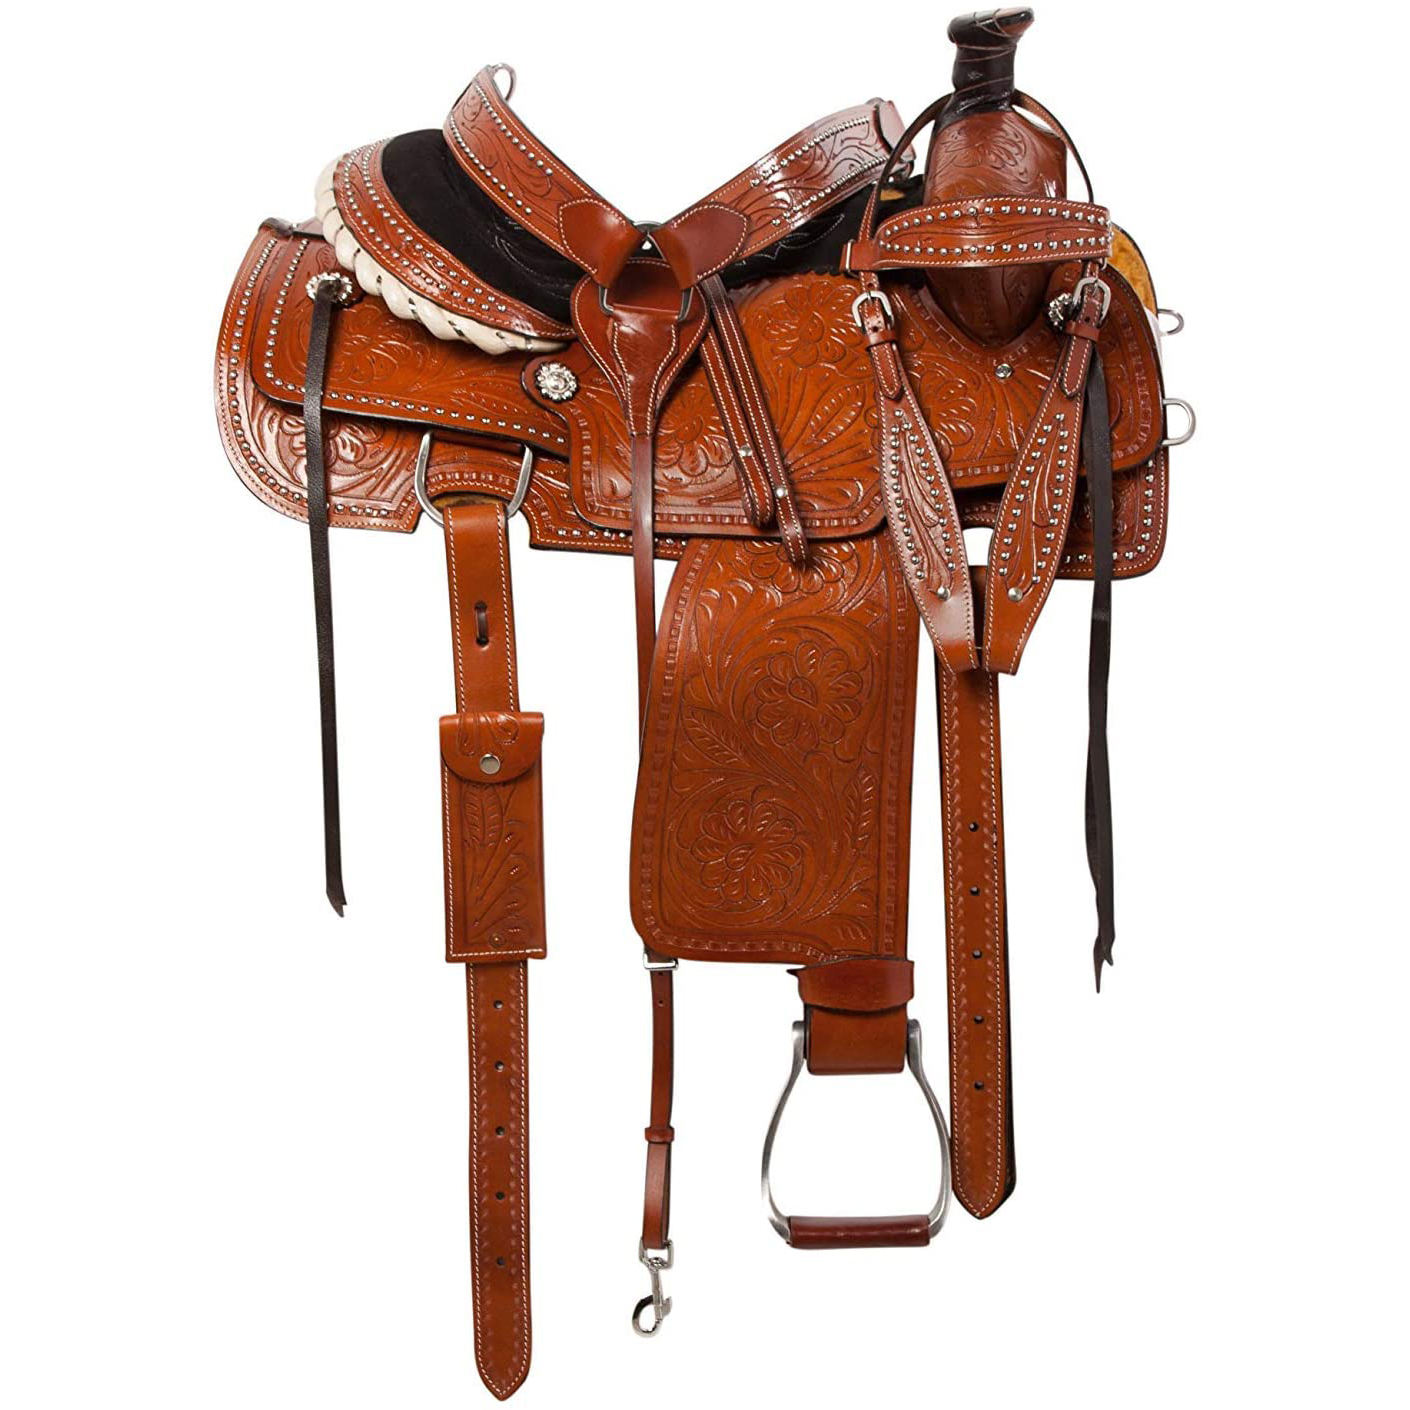 Premium Western All Purpose Leather Roping Ranch Work Horse Saddle Tack By A.H. SADDLERY